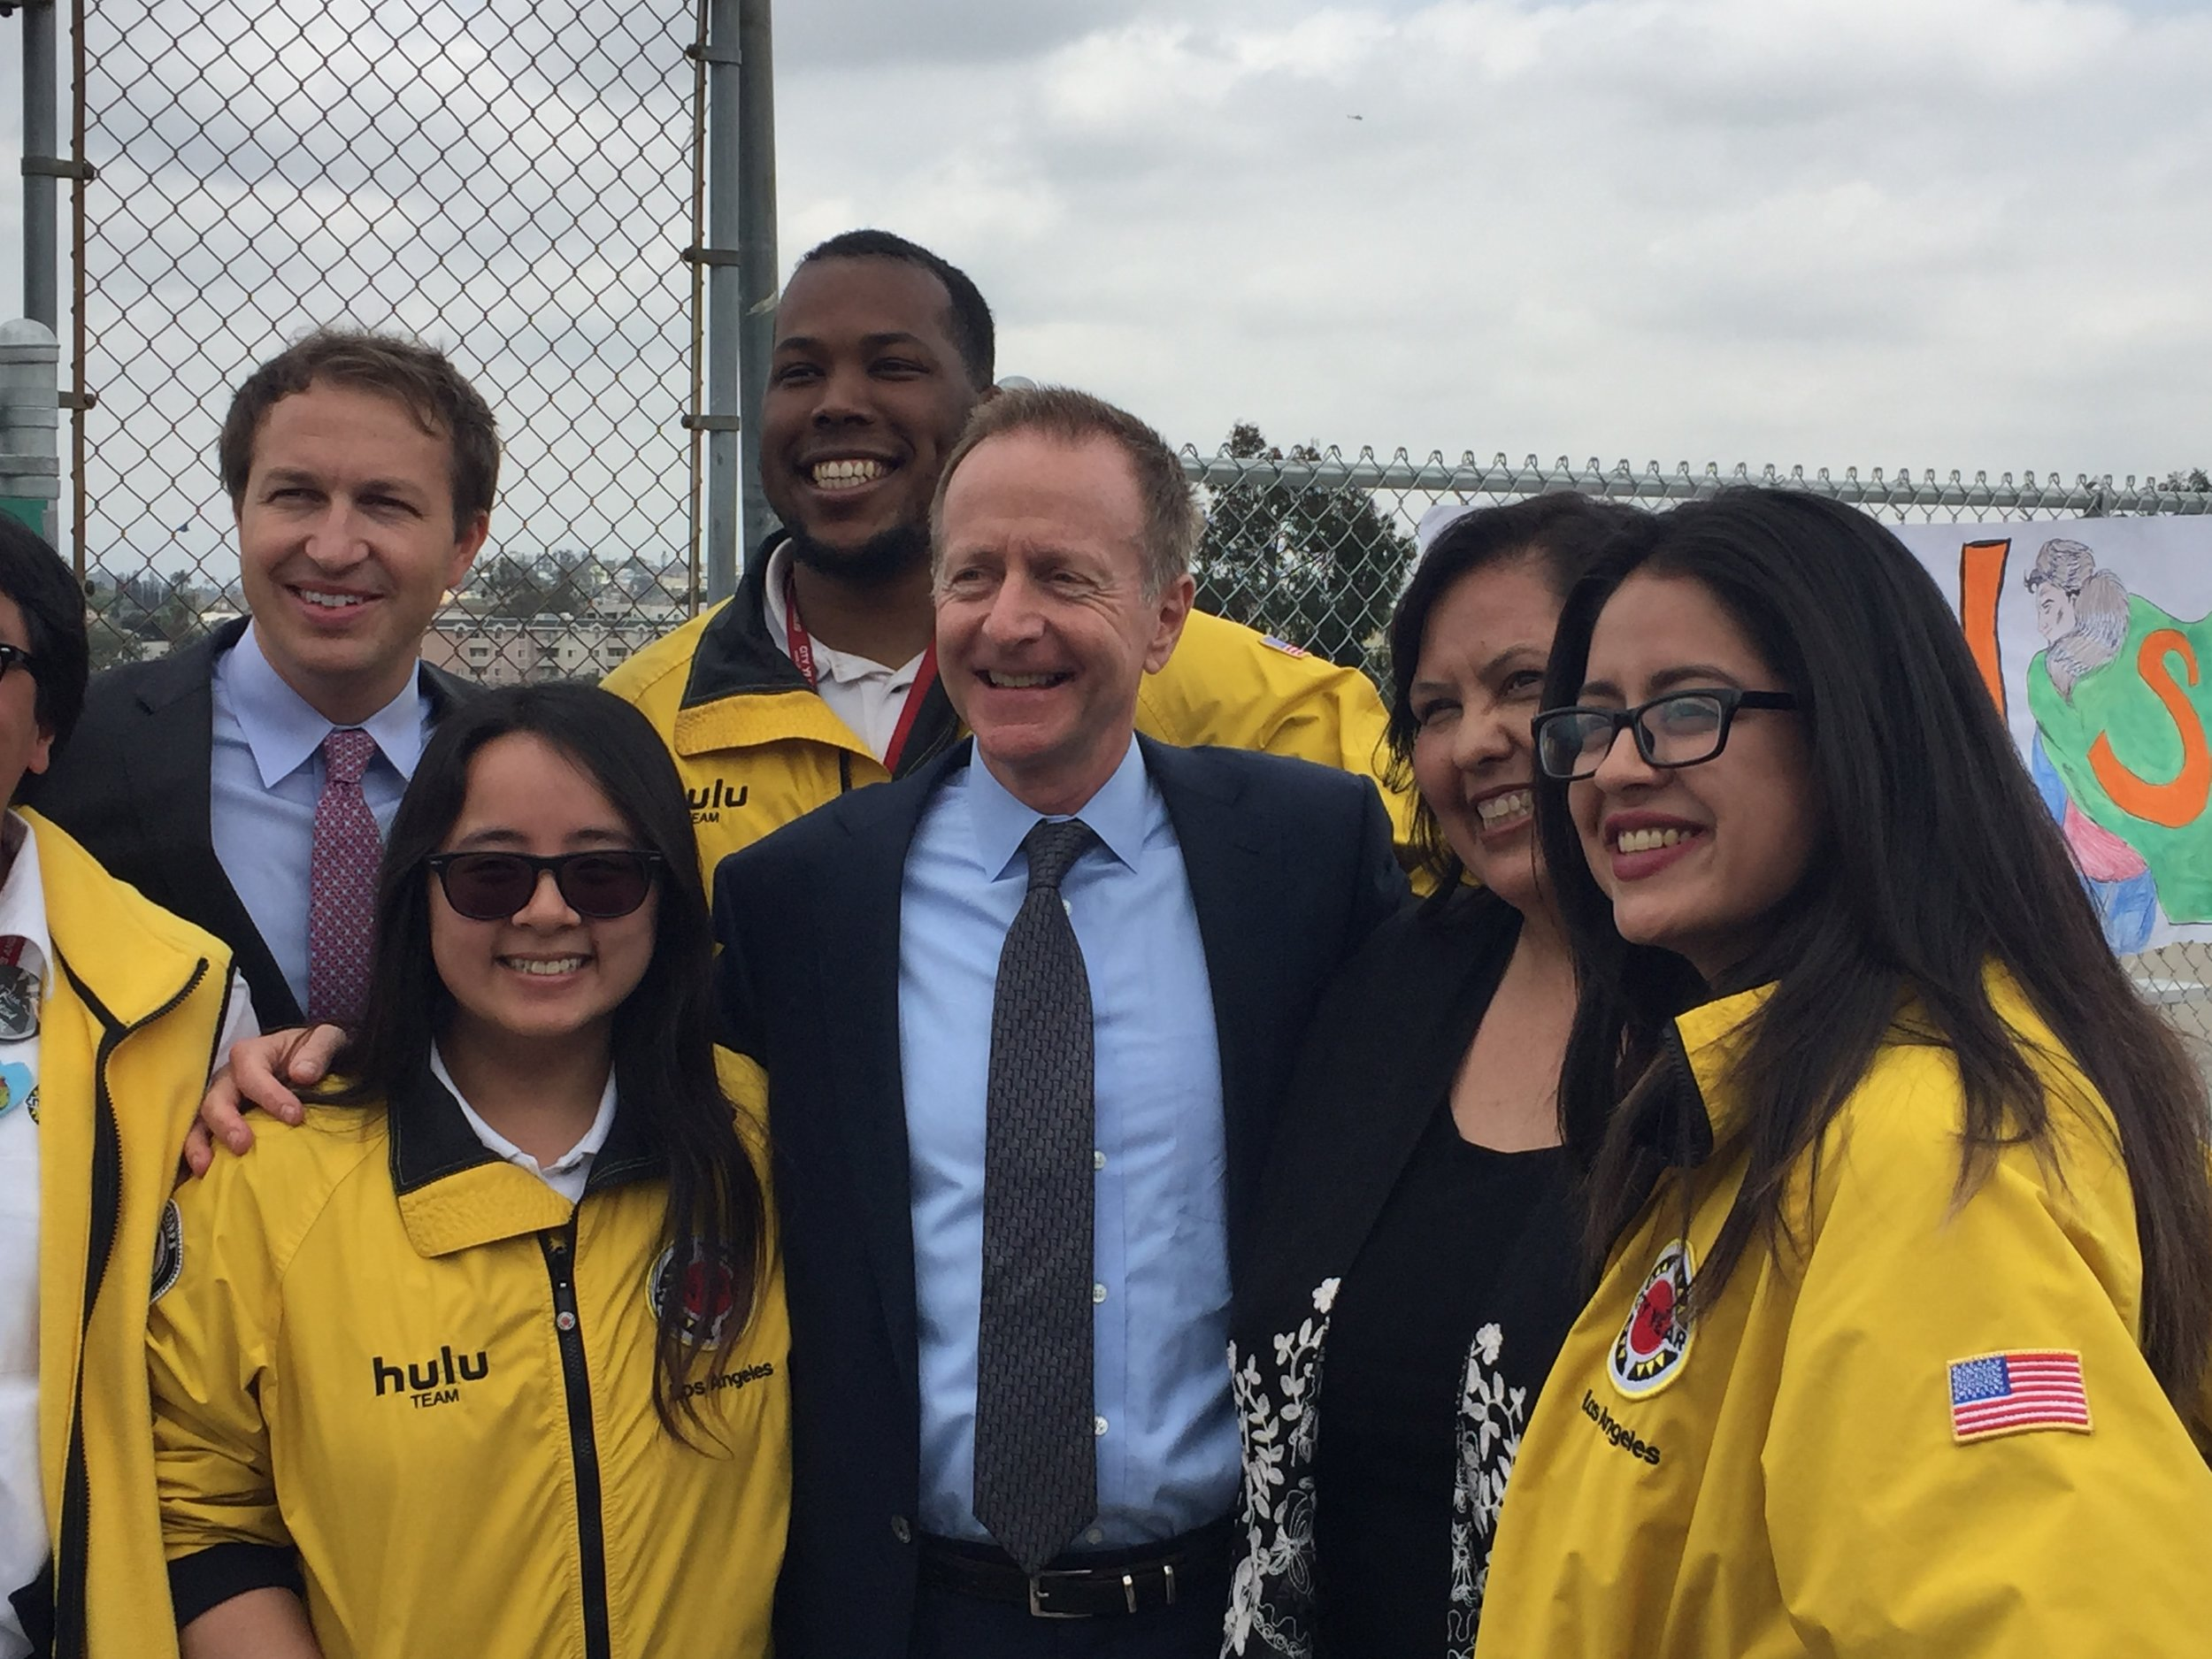 LAUSD's new superintendent Austin Beutner flanked by City year LA volunteers, Board President Monica Garcia and Vice President Nick Melvoin Wednesday at Belmont High